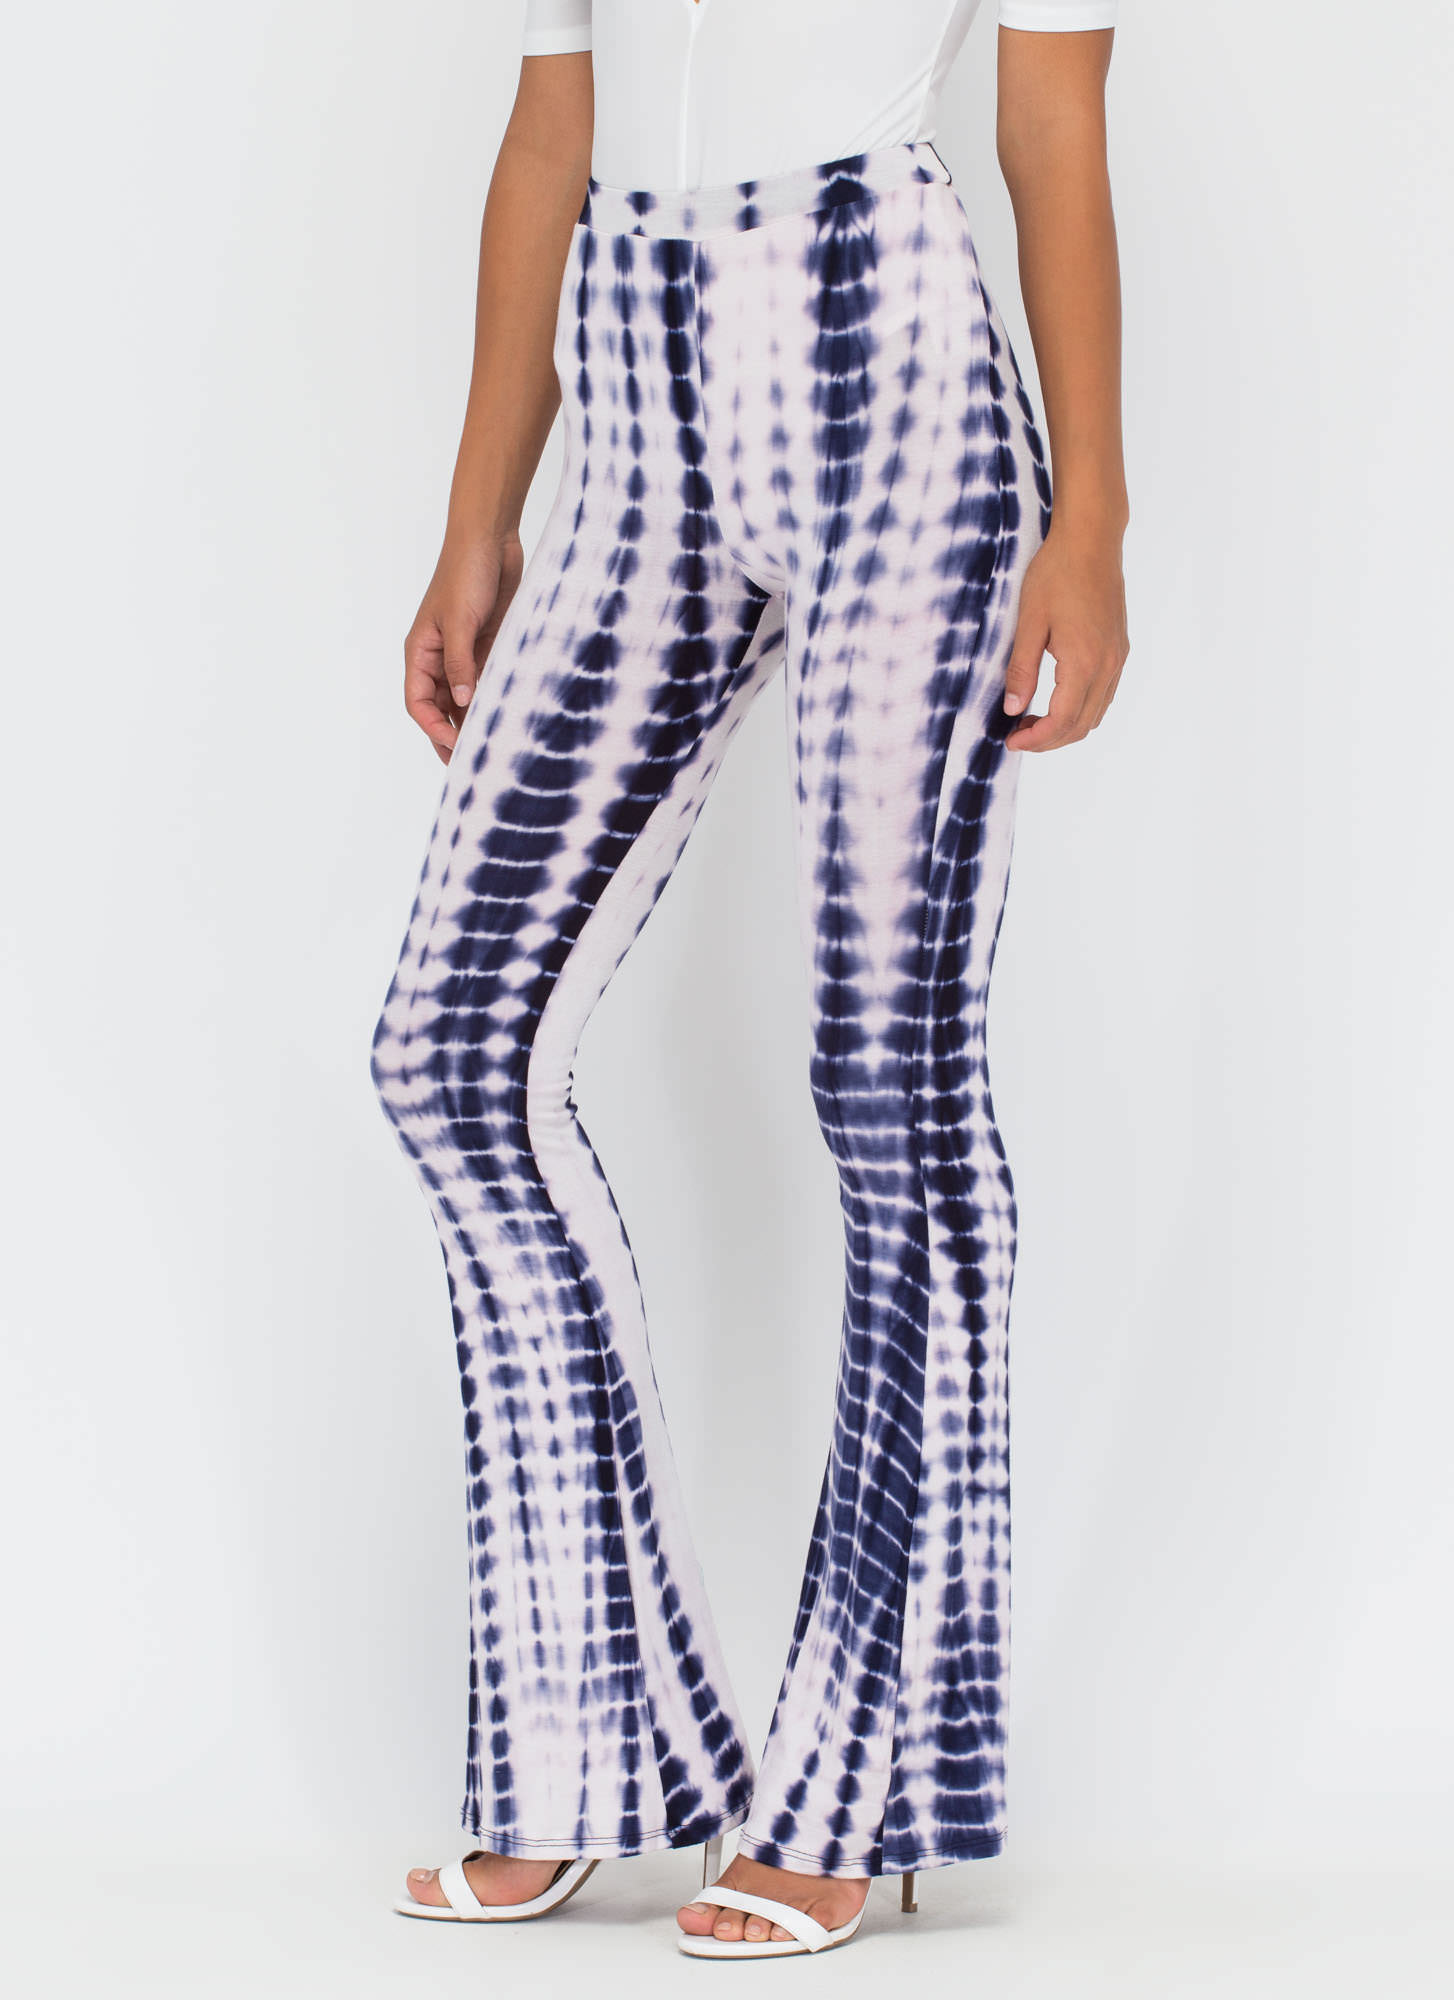 Ride The Wave Tie-Dye Flared Pants NAVY